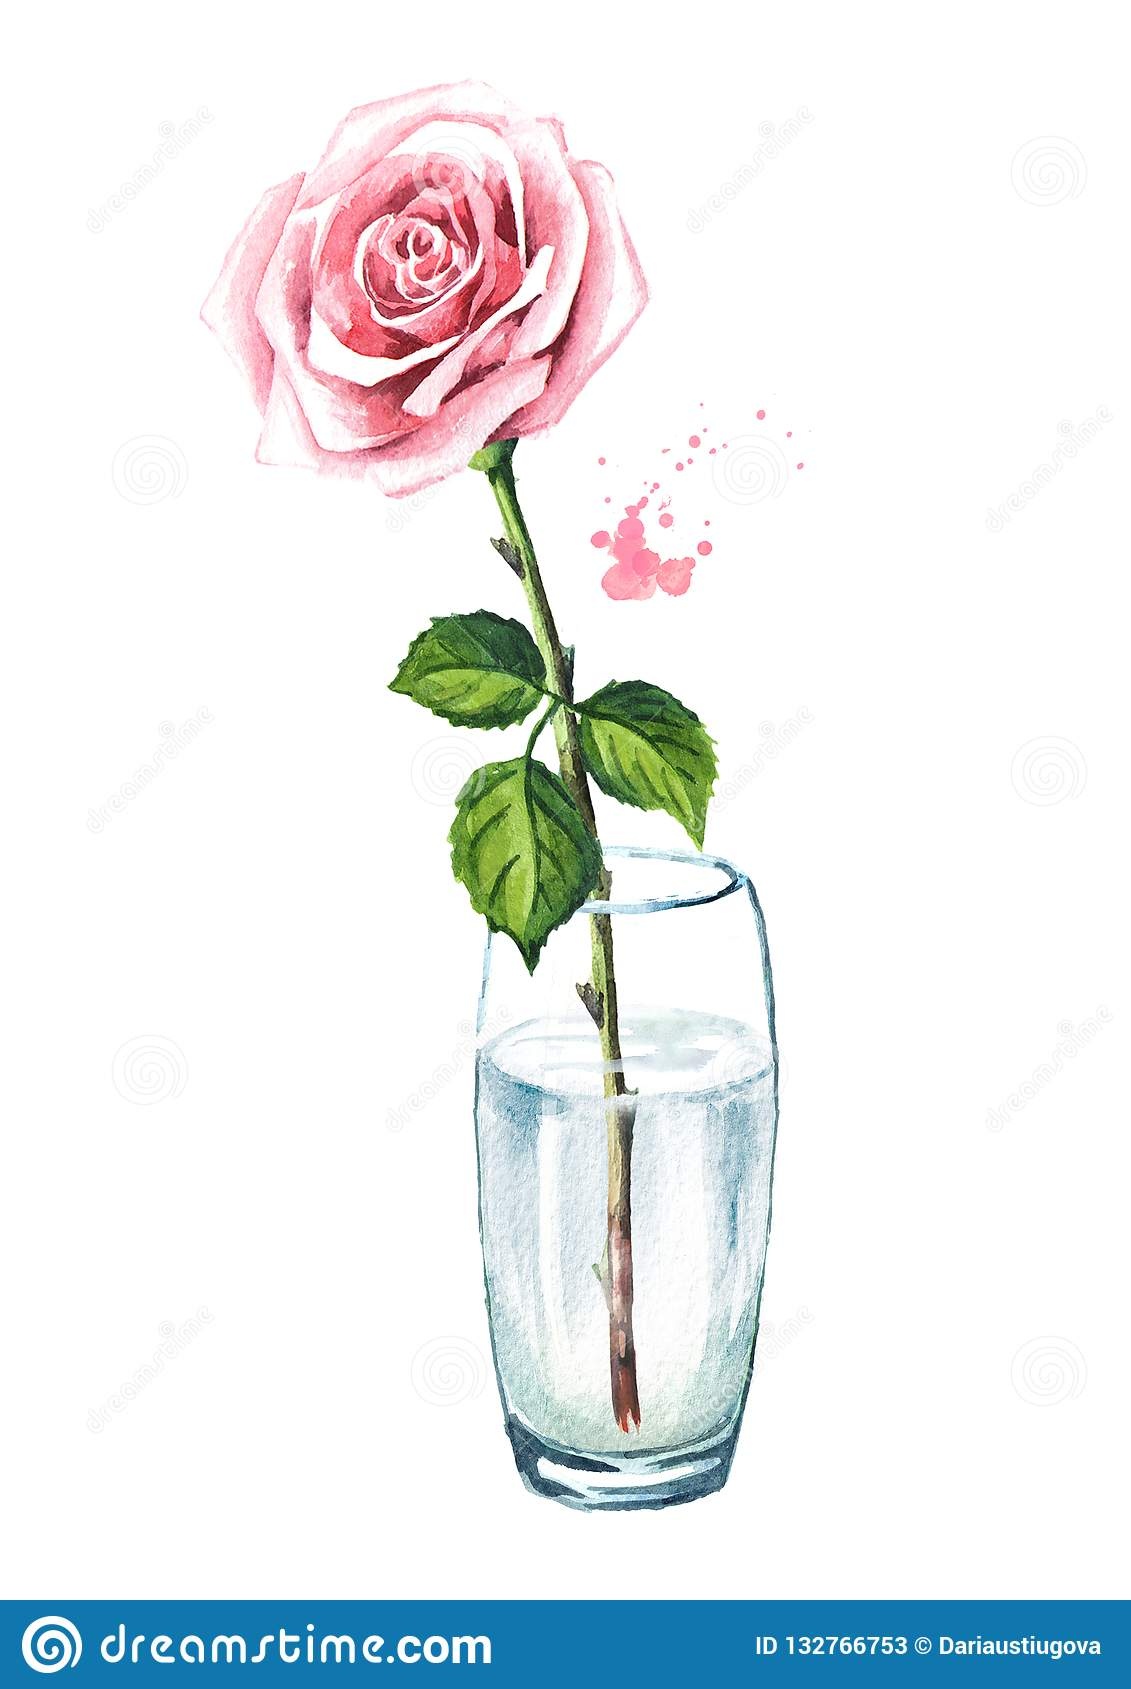 274 & Pink Rose Flower In A Glass Vase. Watercolor Hand Drawn ...